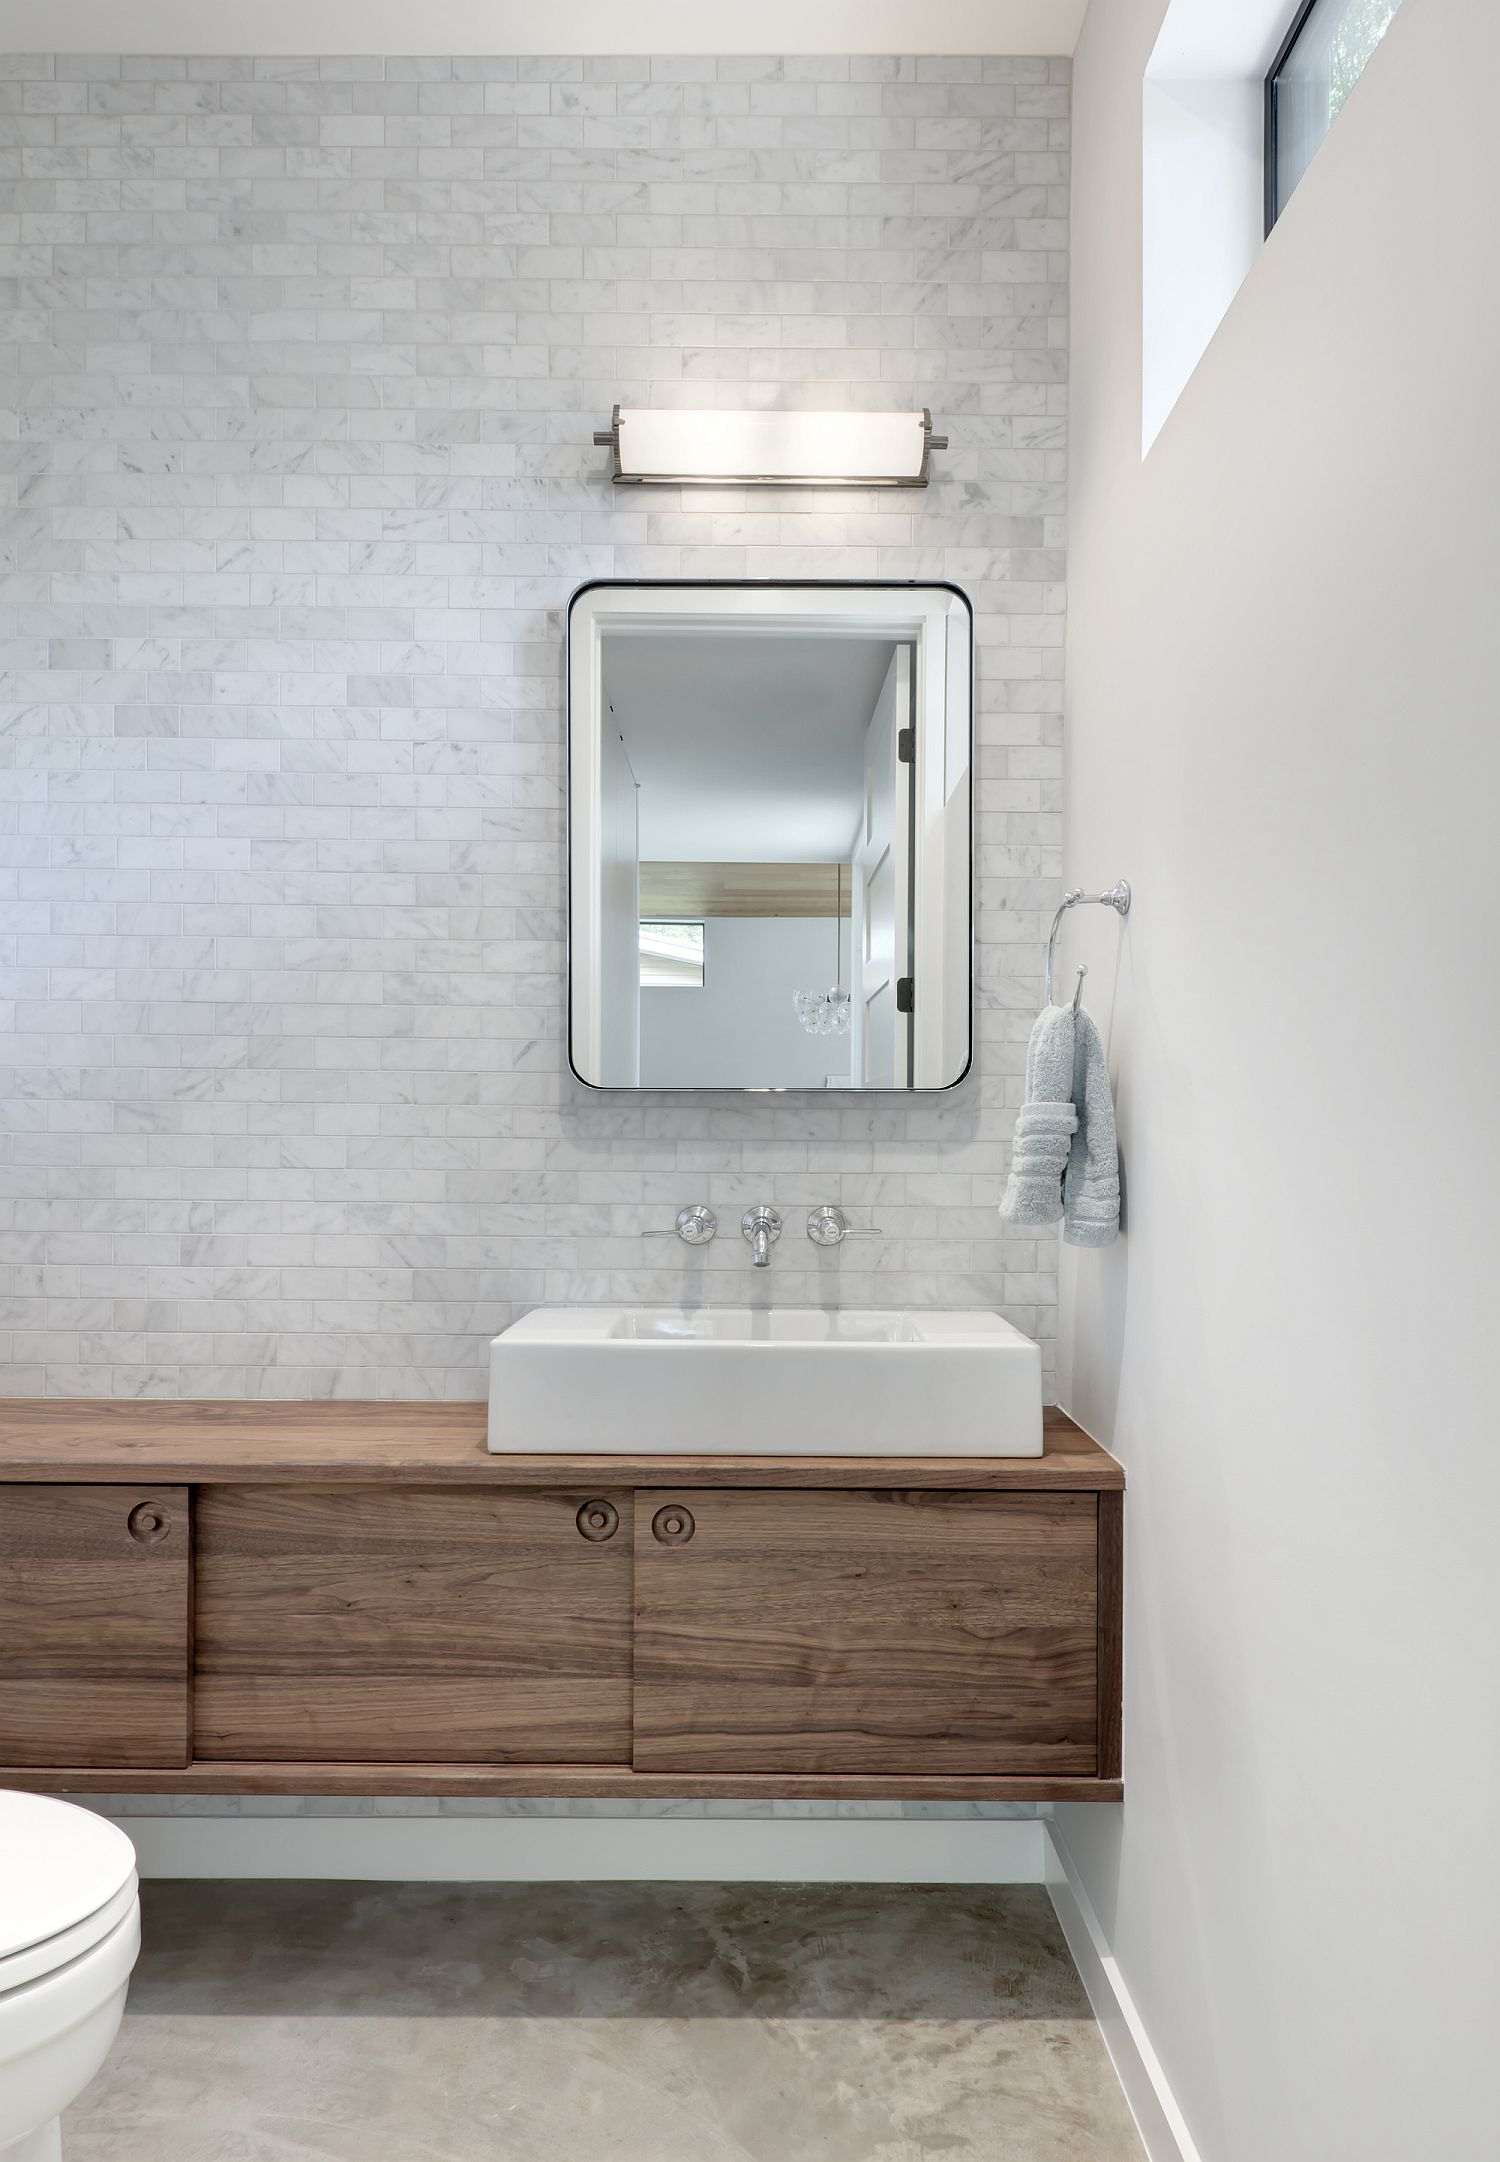 Floating brick vanity for the modern bathroom in white and gray